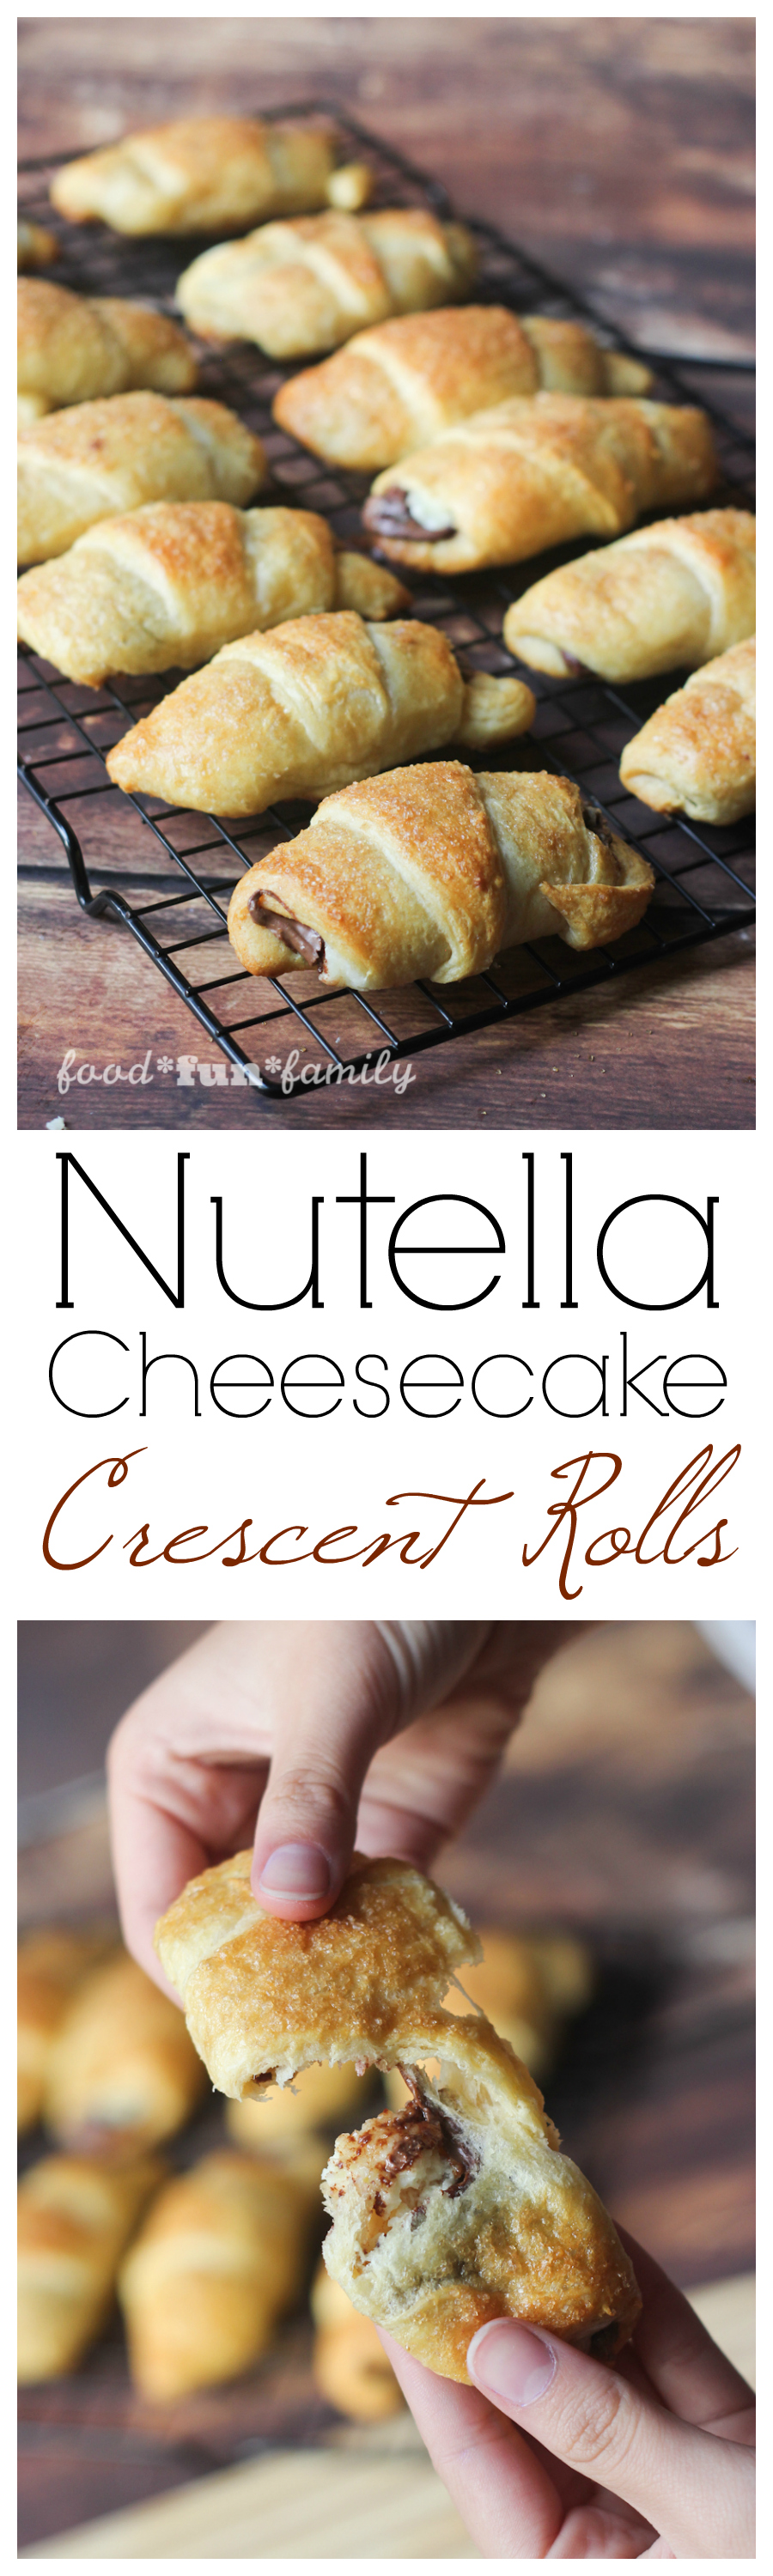 Nutella-cheesecake crescent rolls: a delicious and easy holiday recipe. These sweet treats are crowd pleasers and sure to disappear fast, but amazingly quick and easy to make!